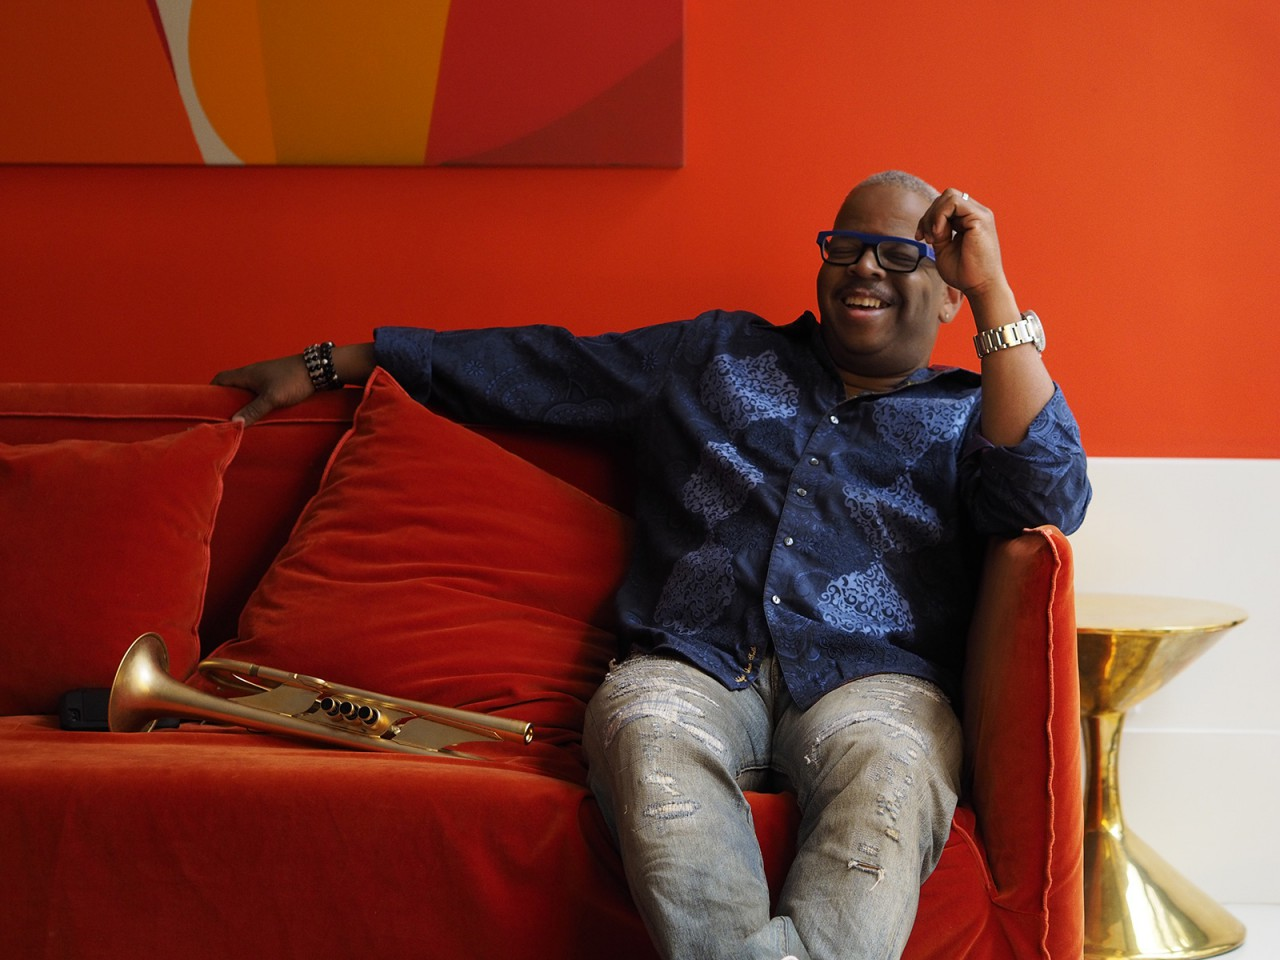 A Moment in Time - An Interview with Terence Blanchard